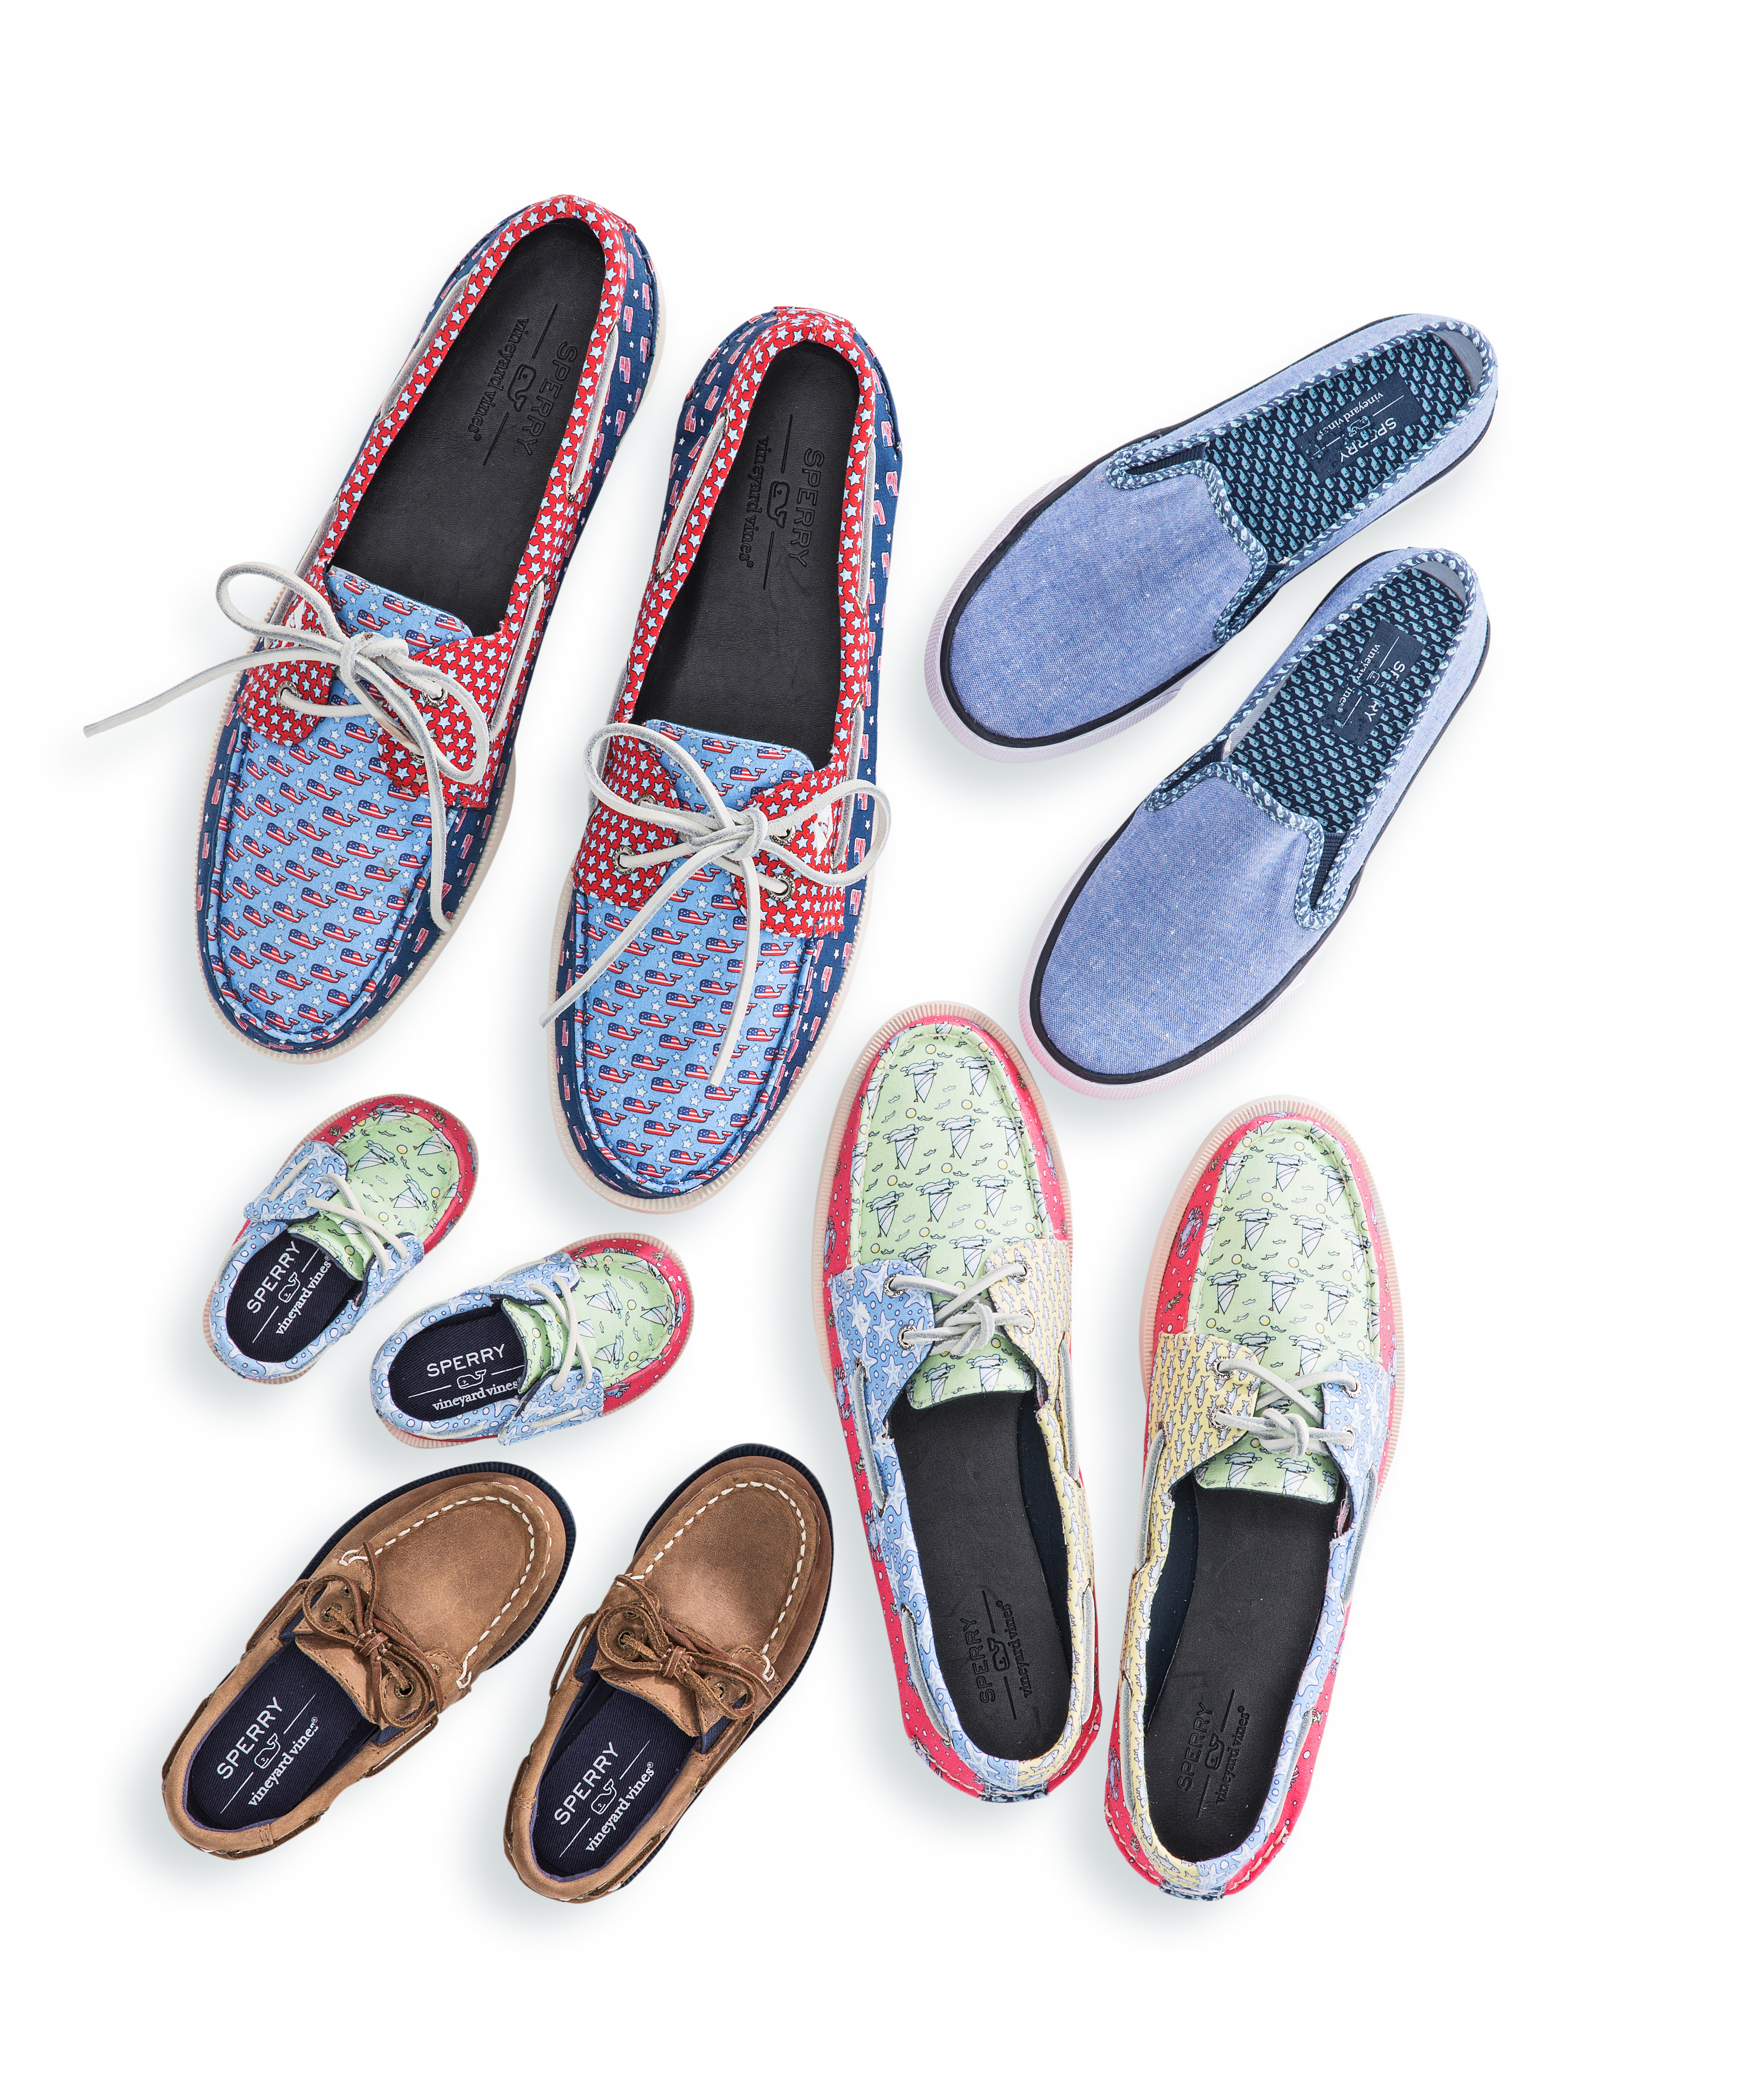 Vineyard Vines x Sperry shoe collection